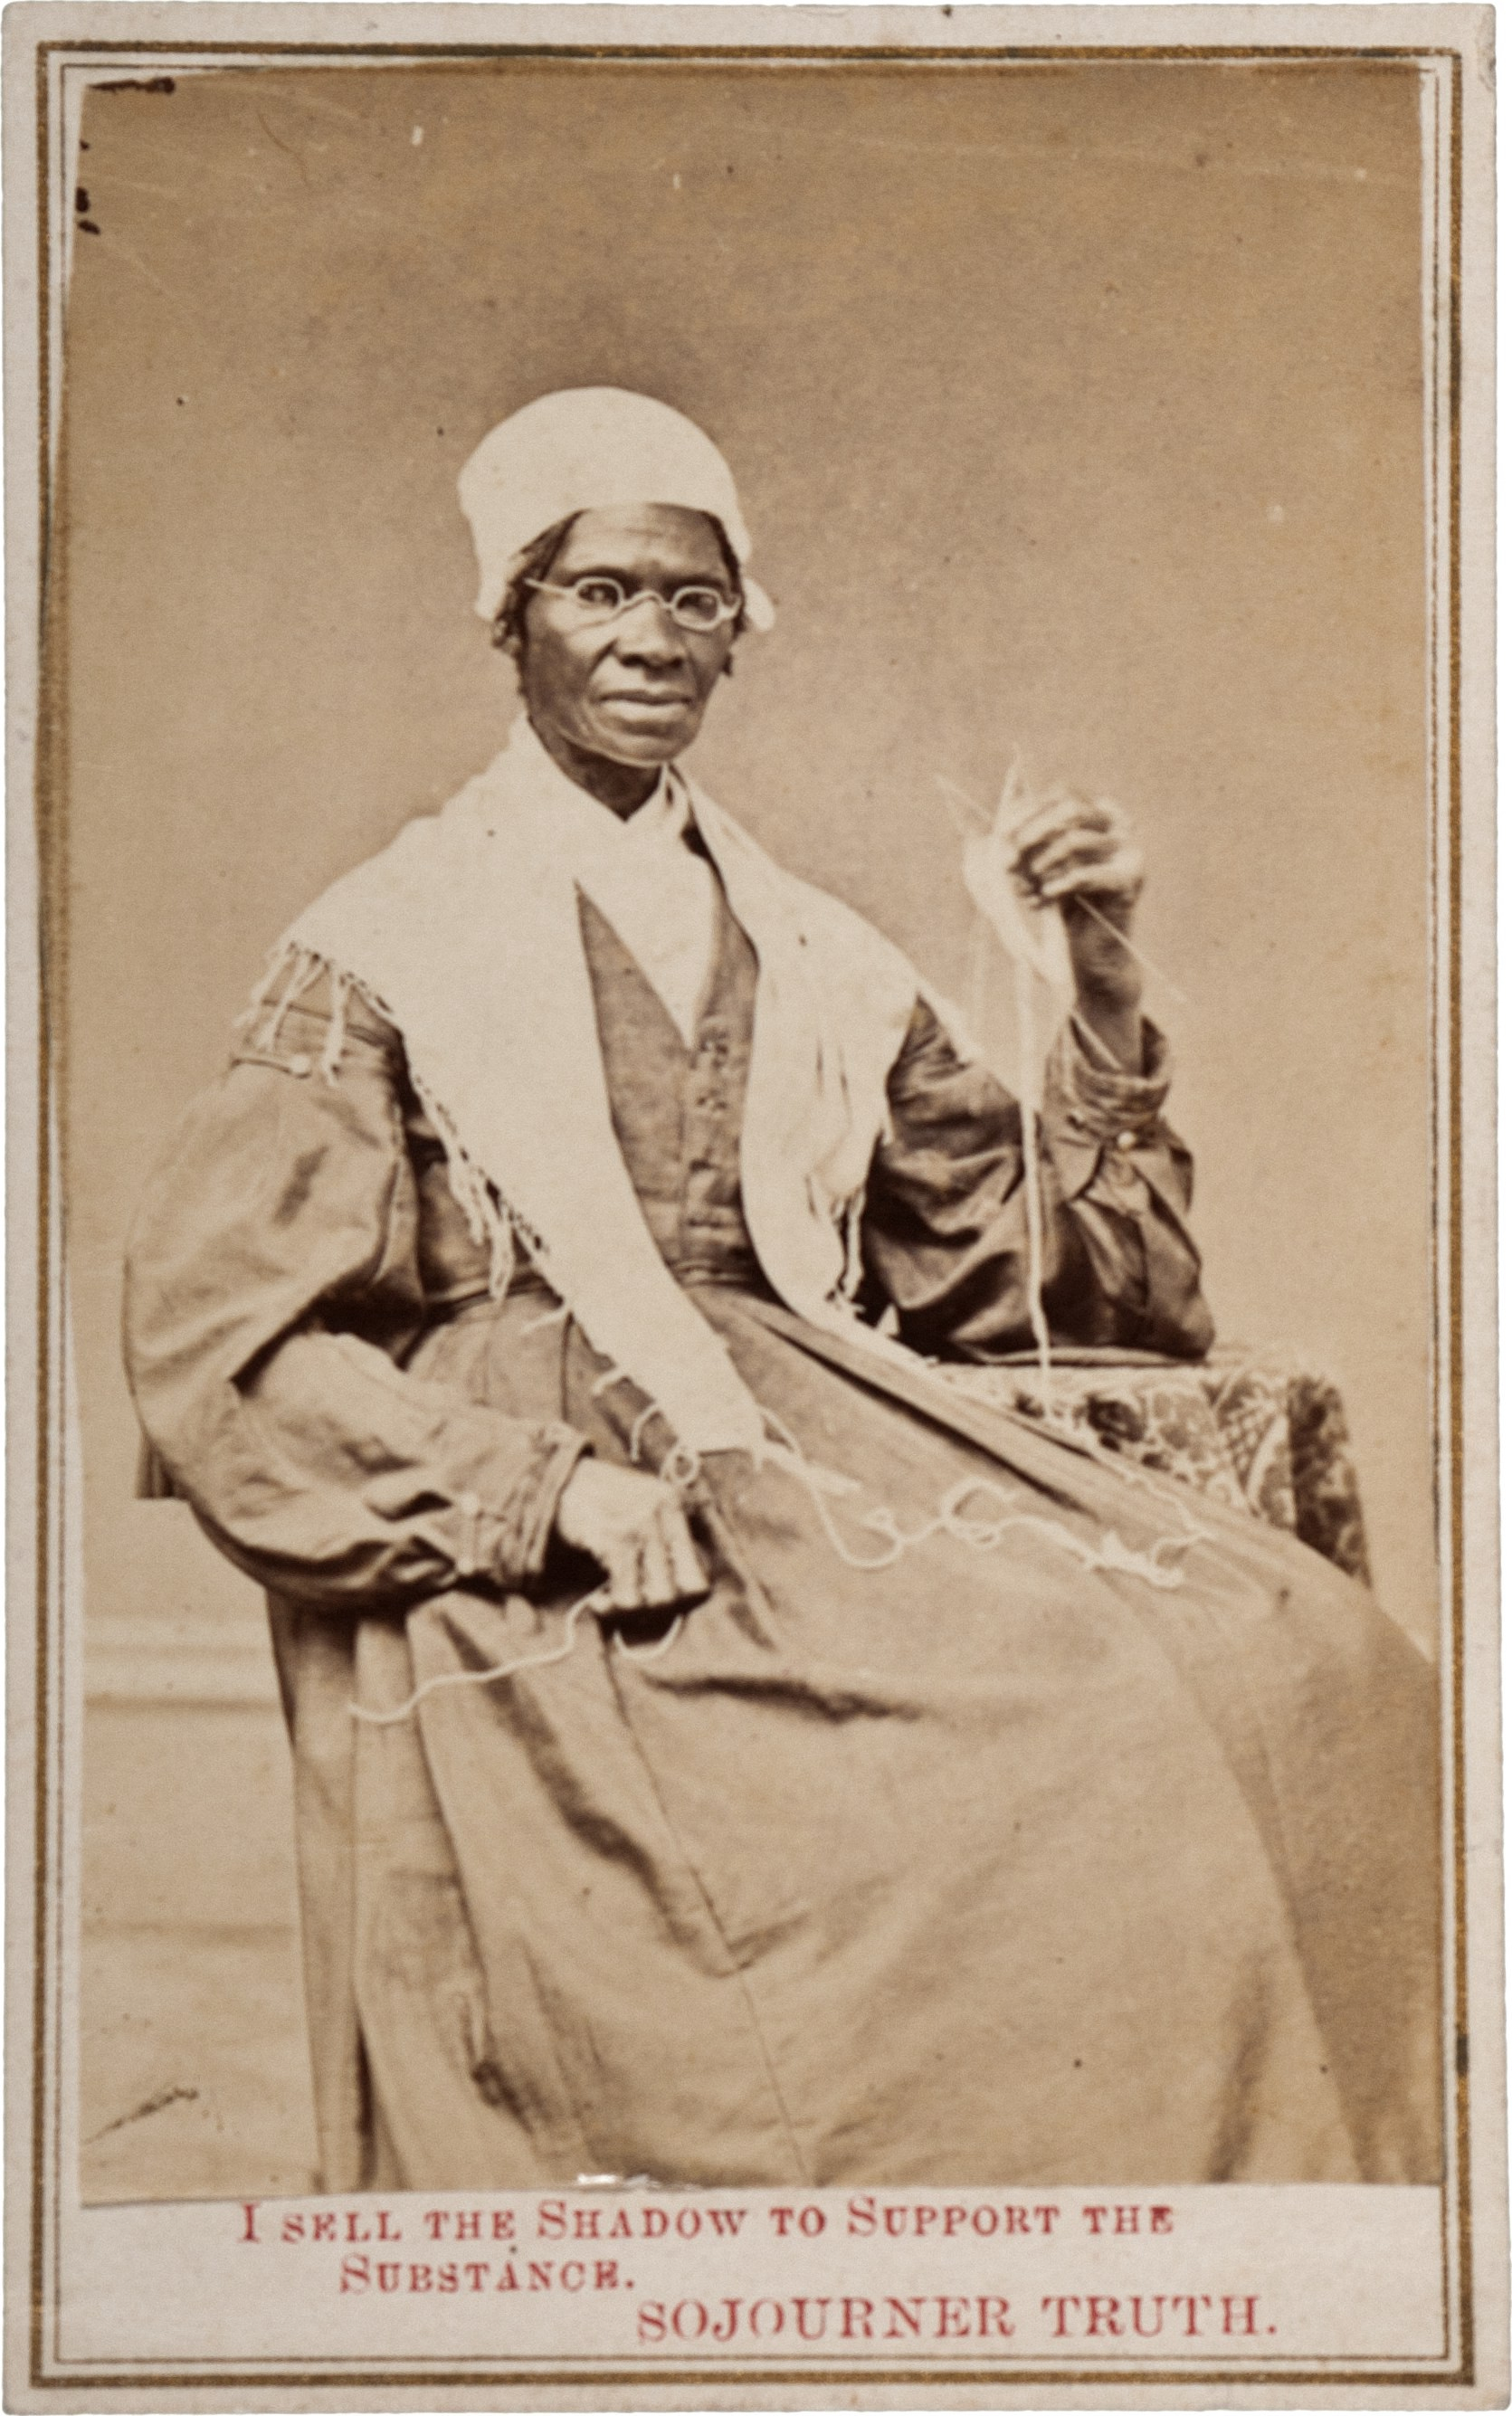 Fundraising photographer of Sojourn Truth - public domain